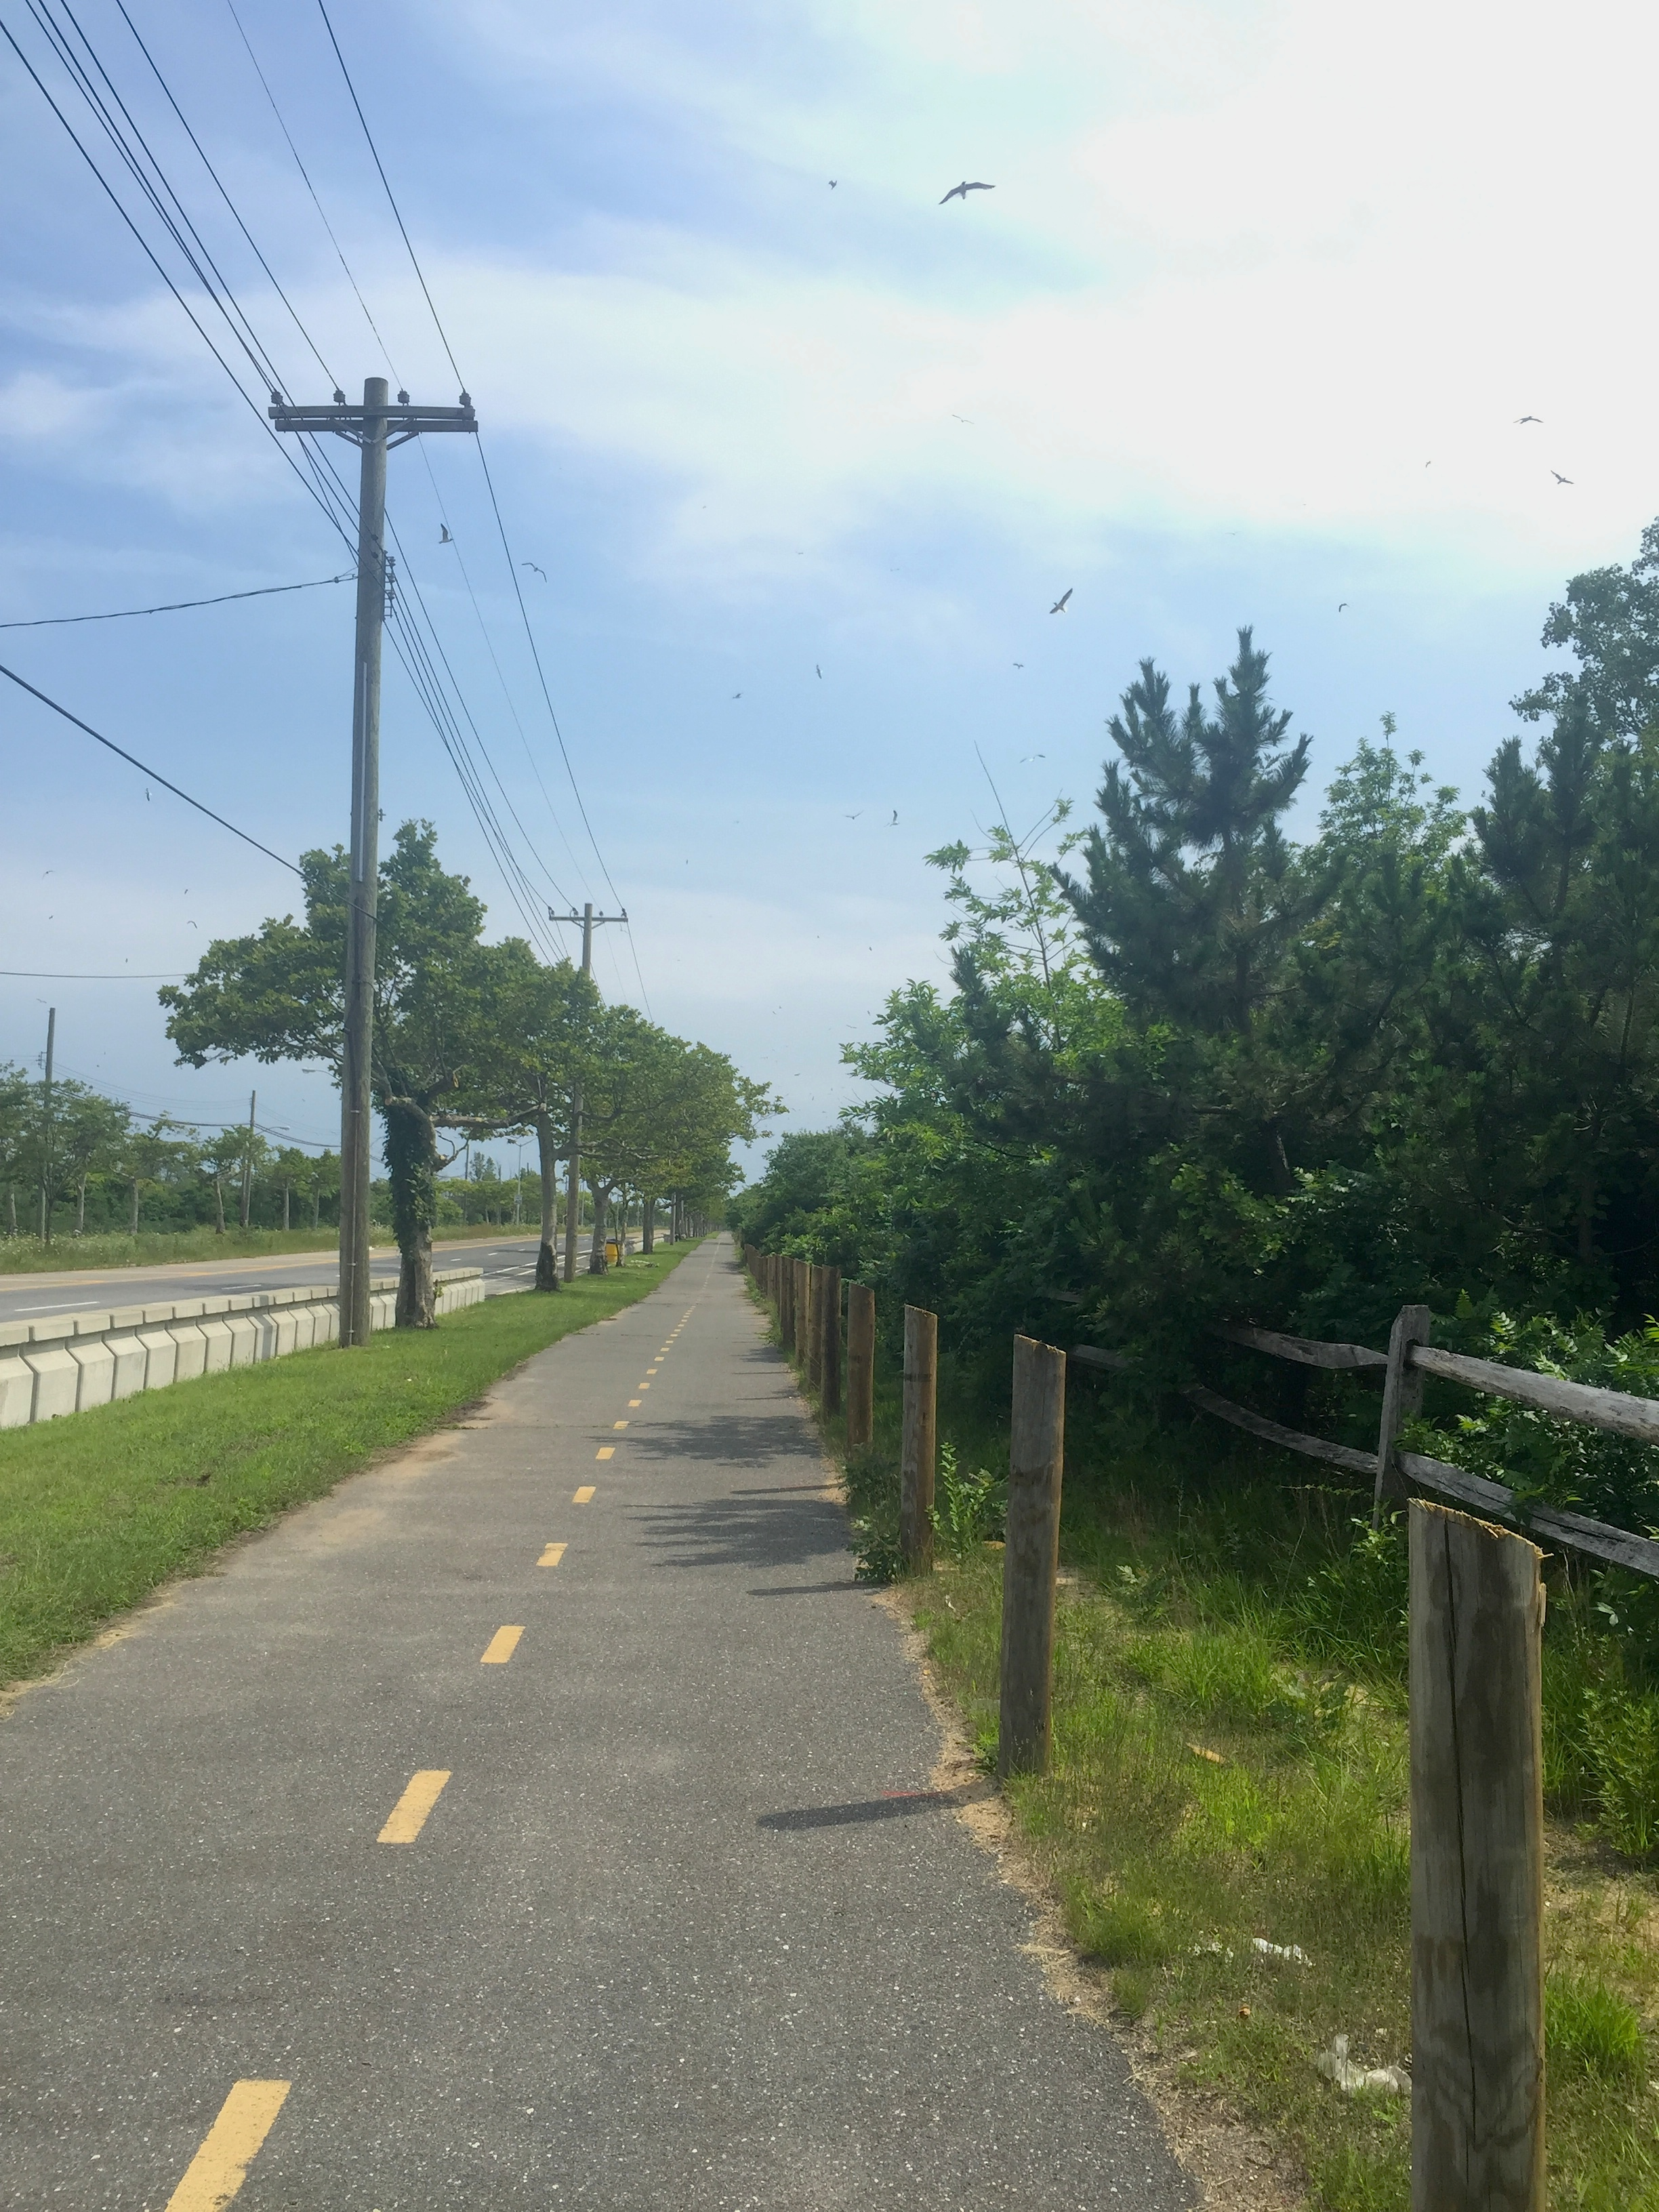 Photo of the Jamaica Bay Greenway by Sarah L. Knapp